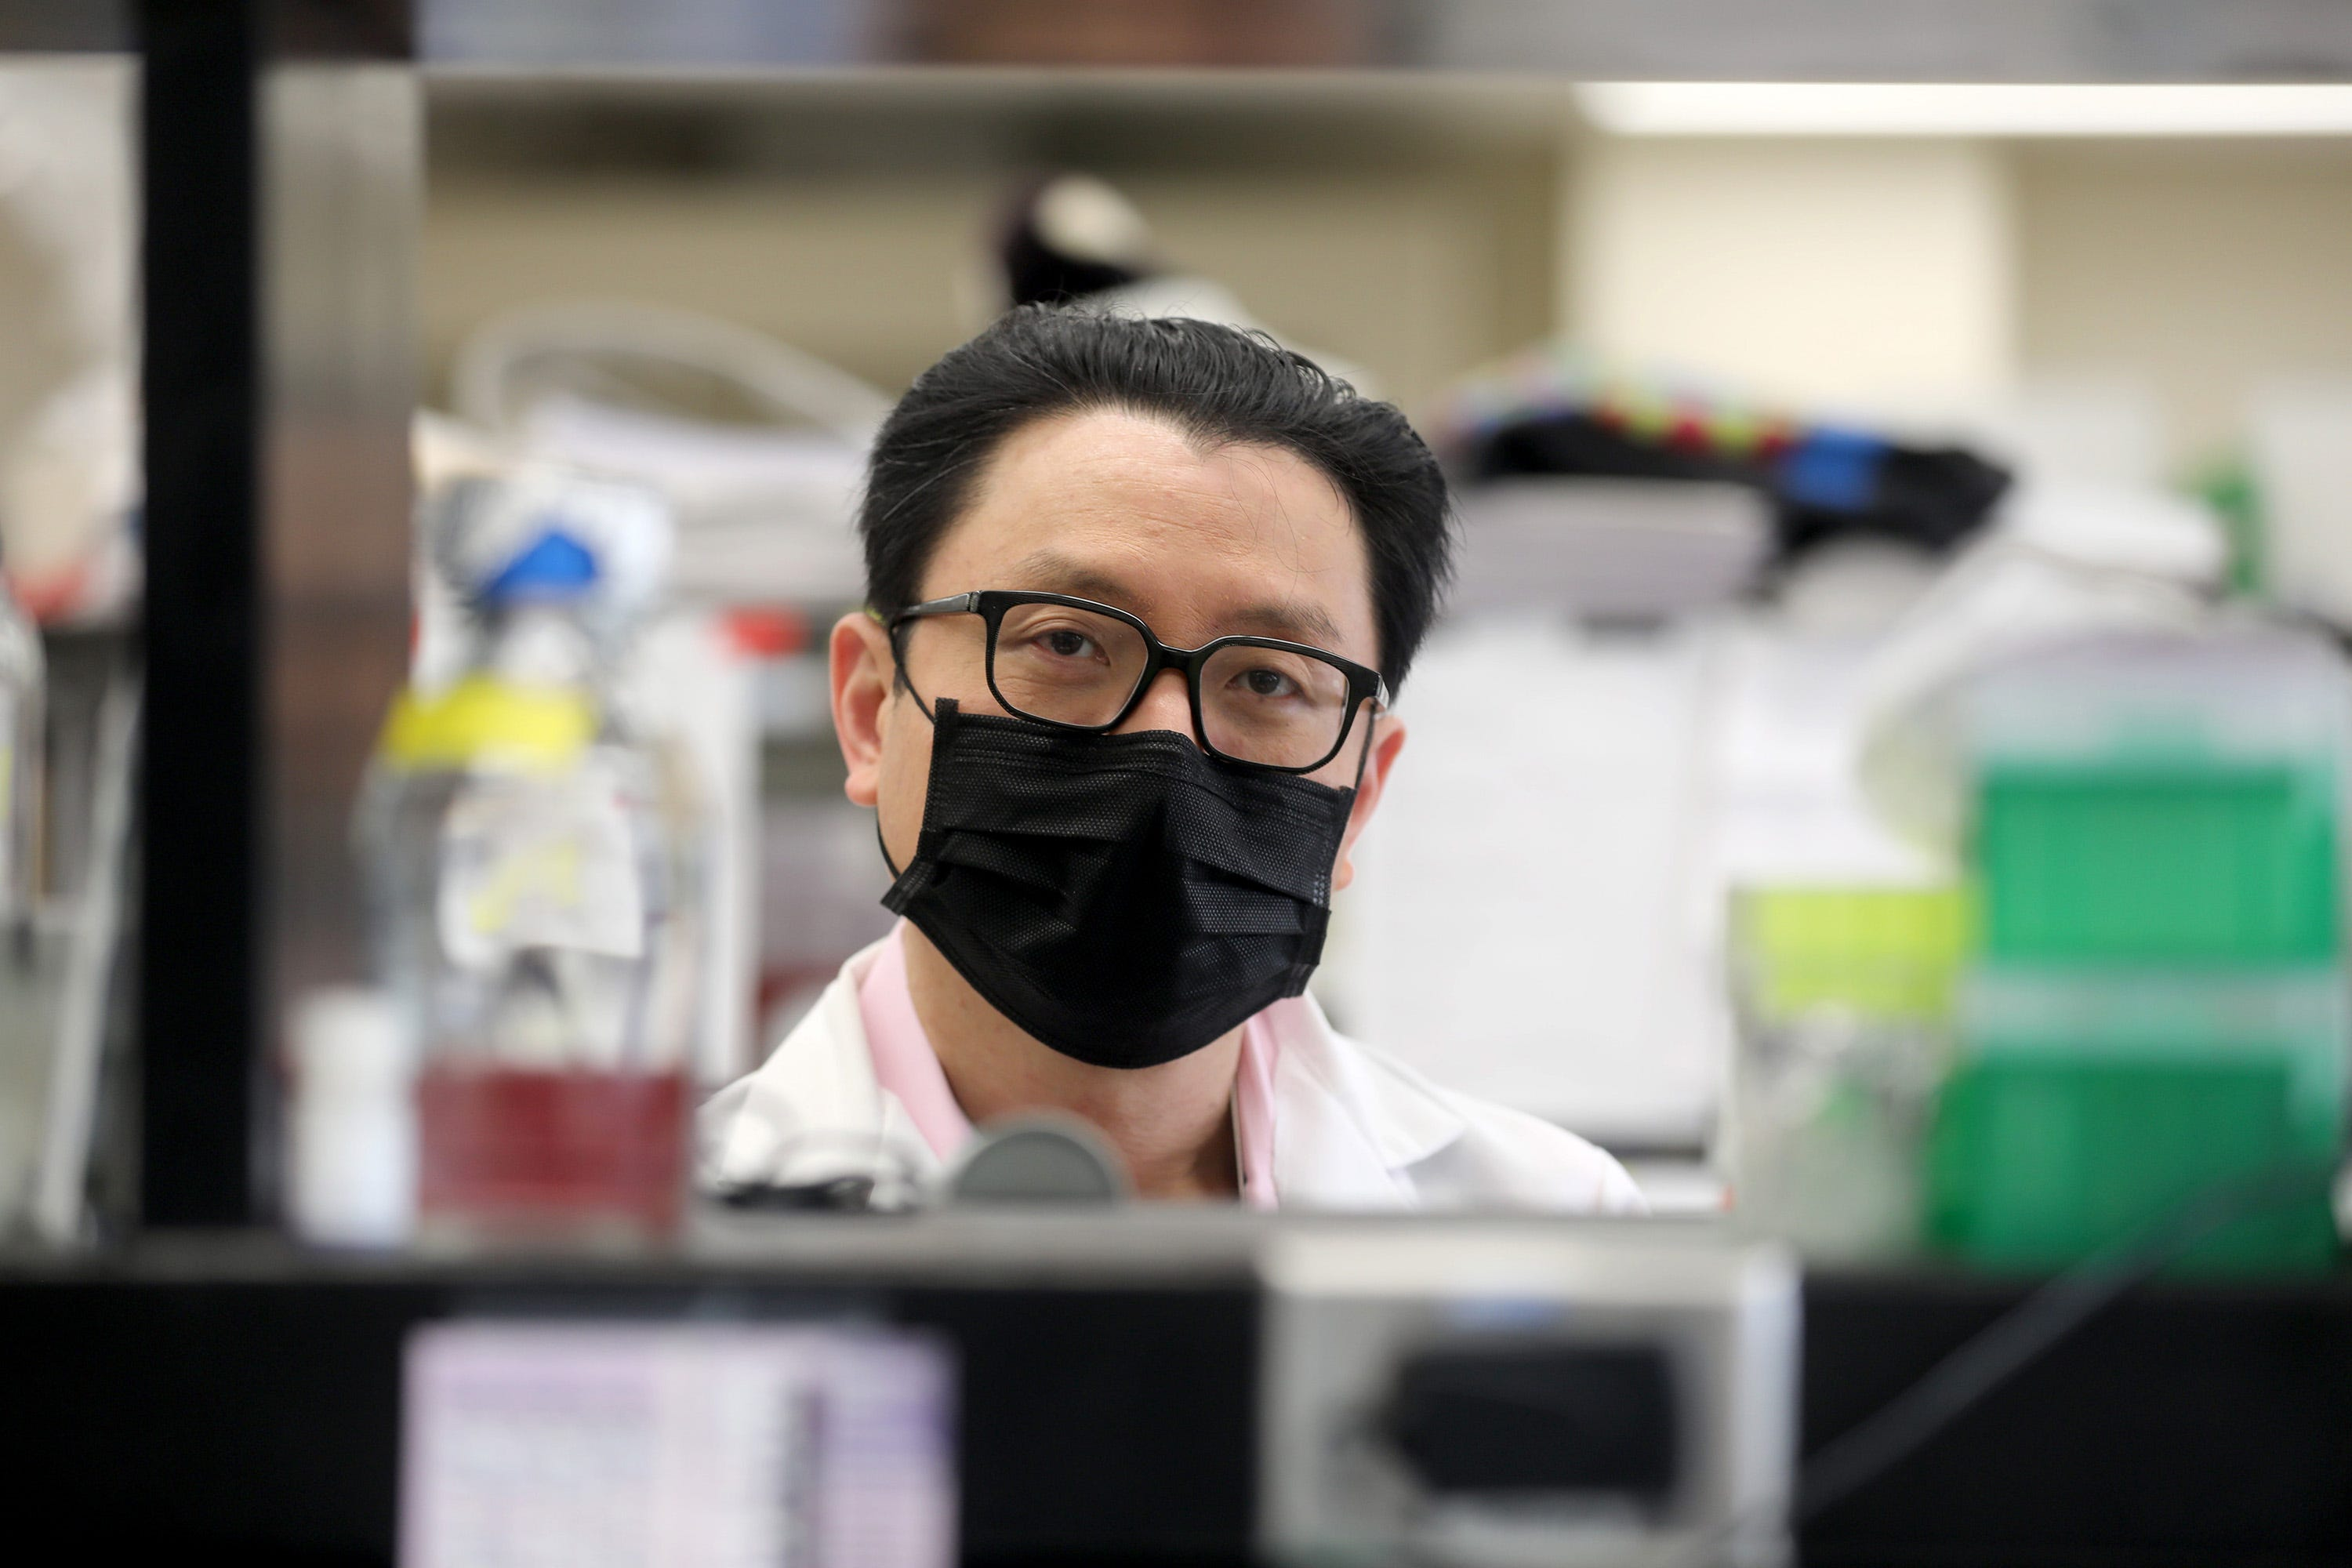 Benhur Lee, Professor of Microbiology at the Icahn School of Medicine at Mount Sinai in New York City, poses for a portrait in his lab on Sept. 29, 2020. Lee has been researching the COVID-19 virus since January. Through August, his lab worked round the clock on nothing but COVID-19. They are now doing research on COVID-19 as well as other forms of the coronavirus.